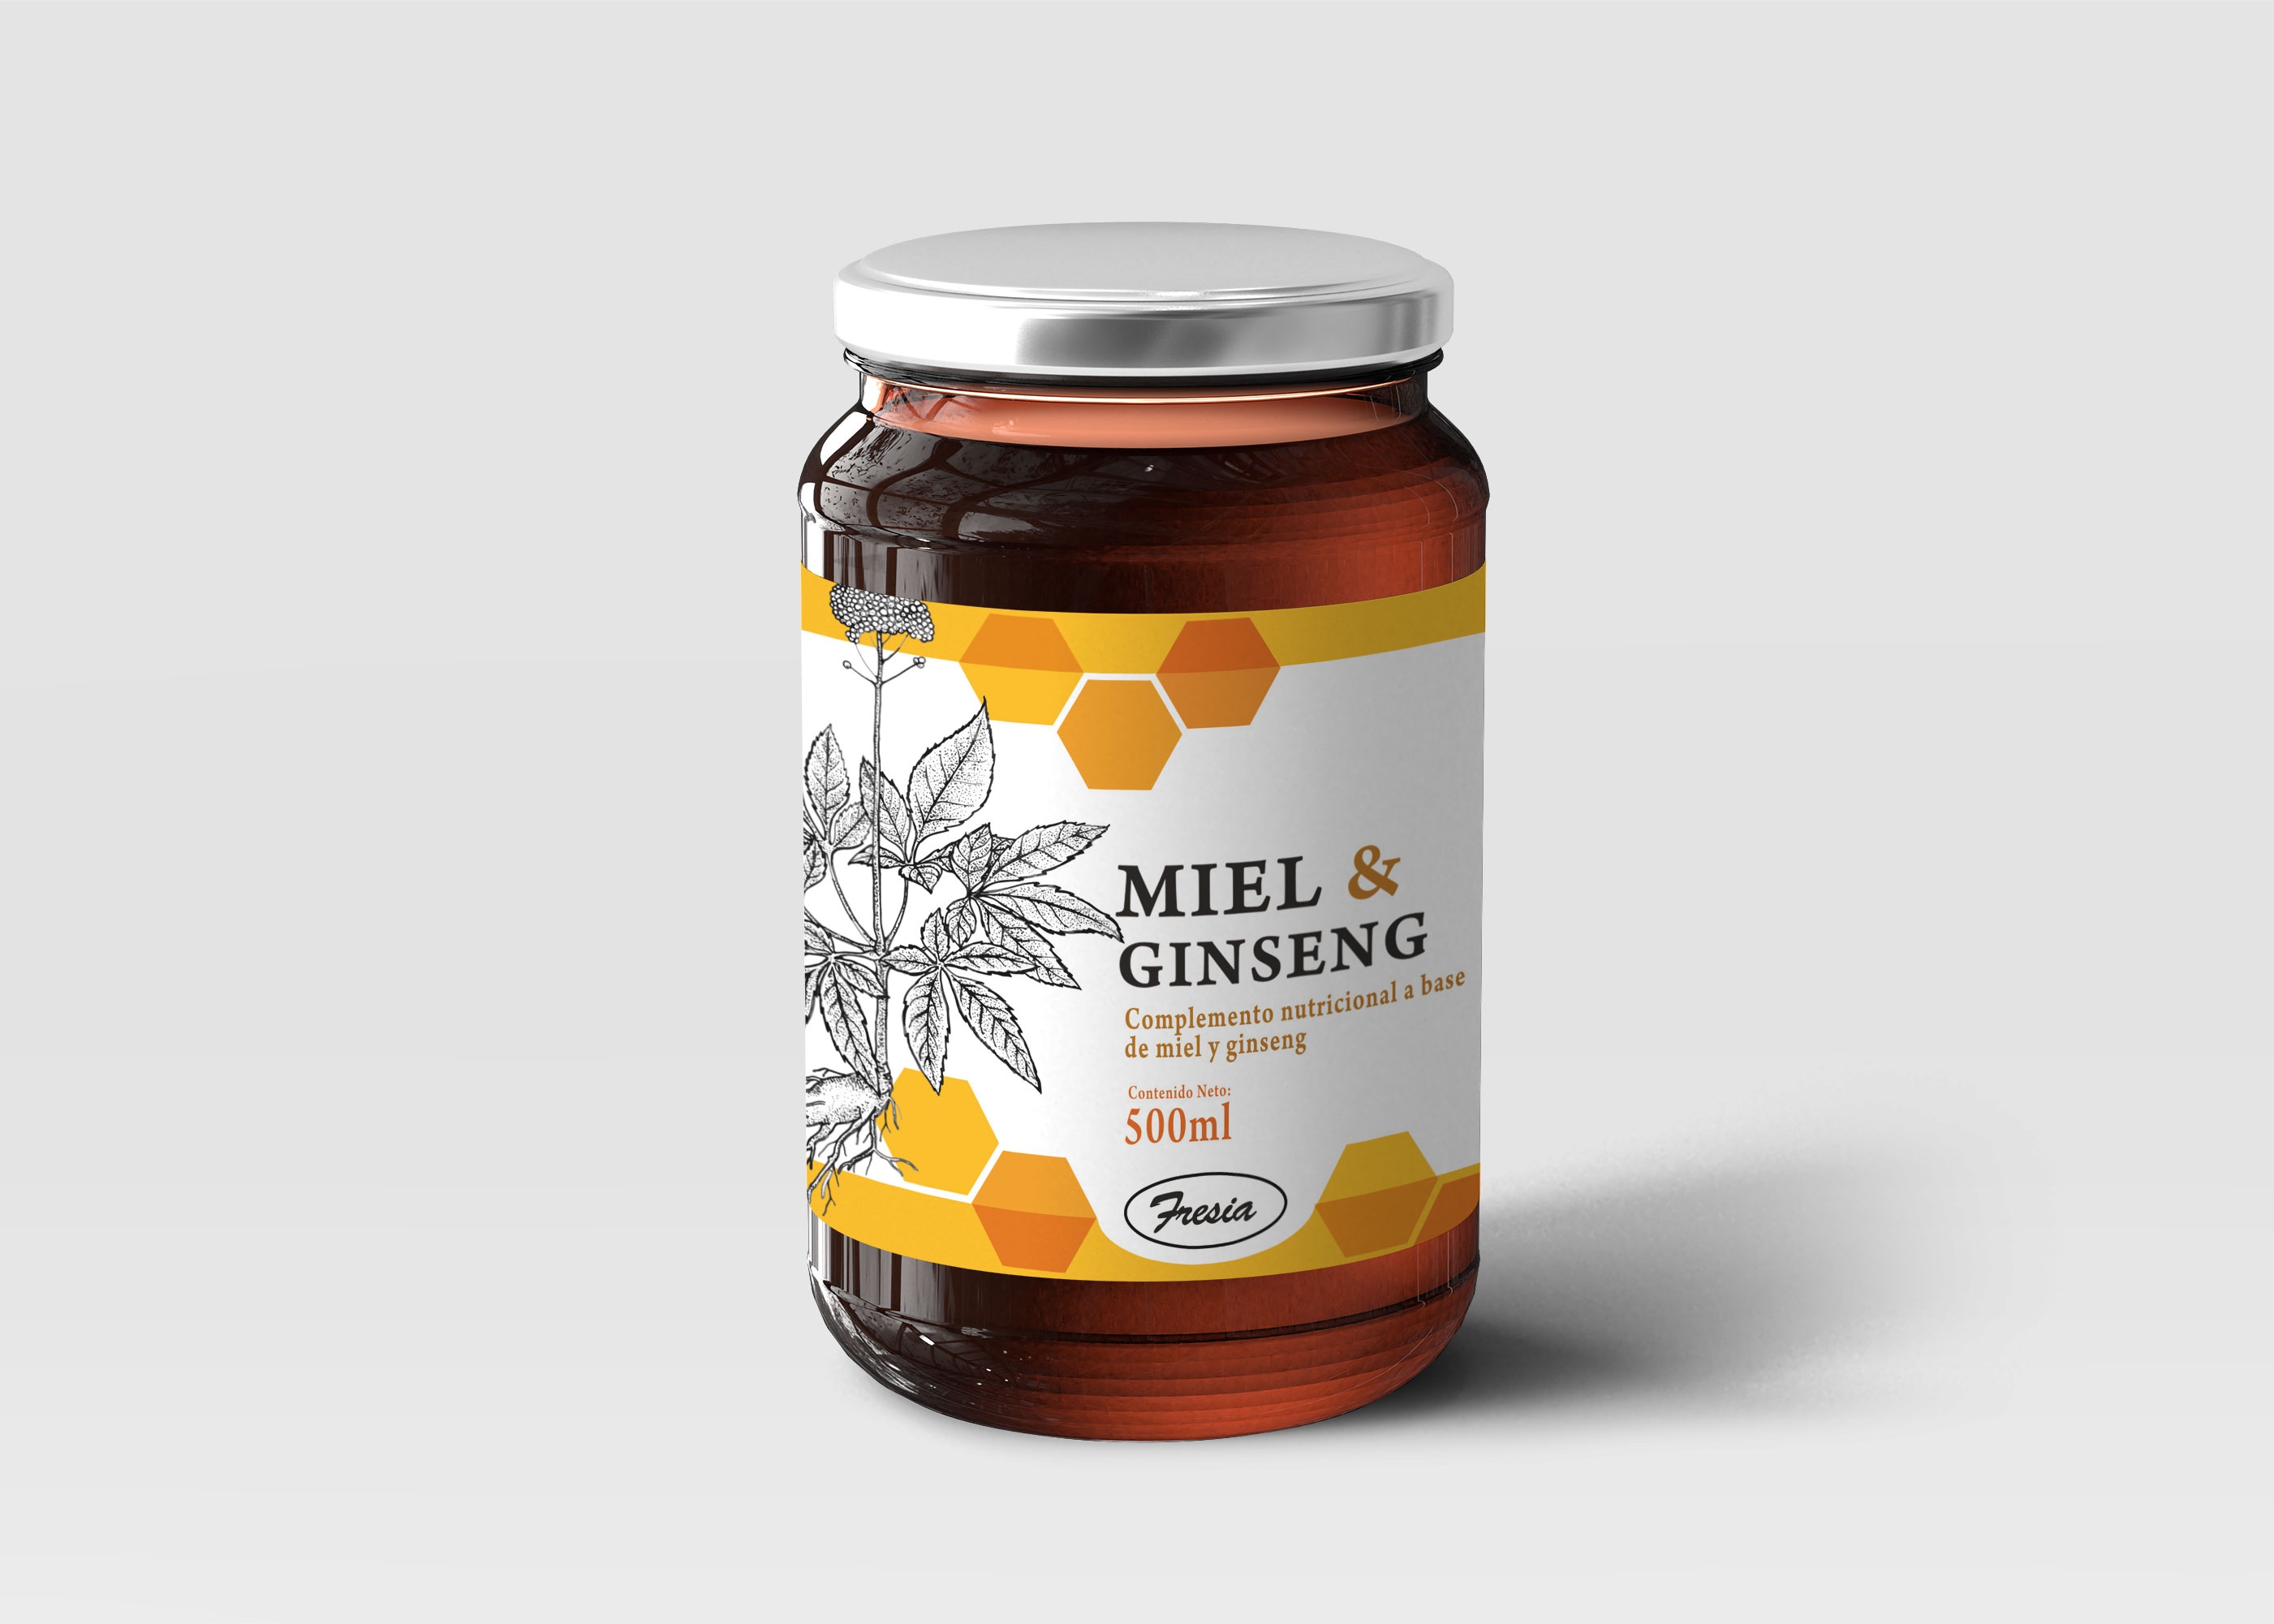 Premium Honey Jar Glass Bottle Mockup